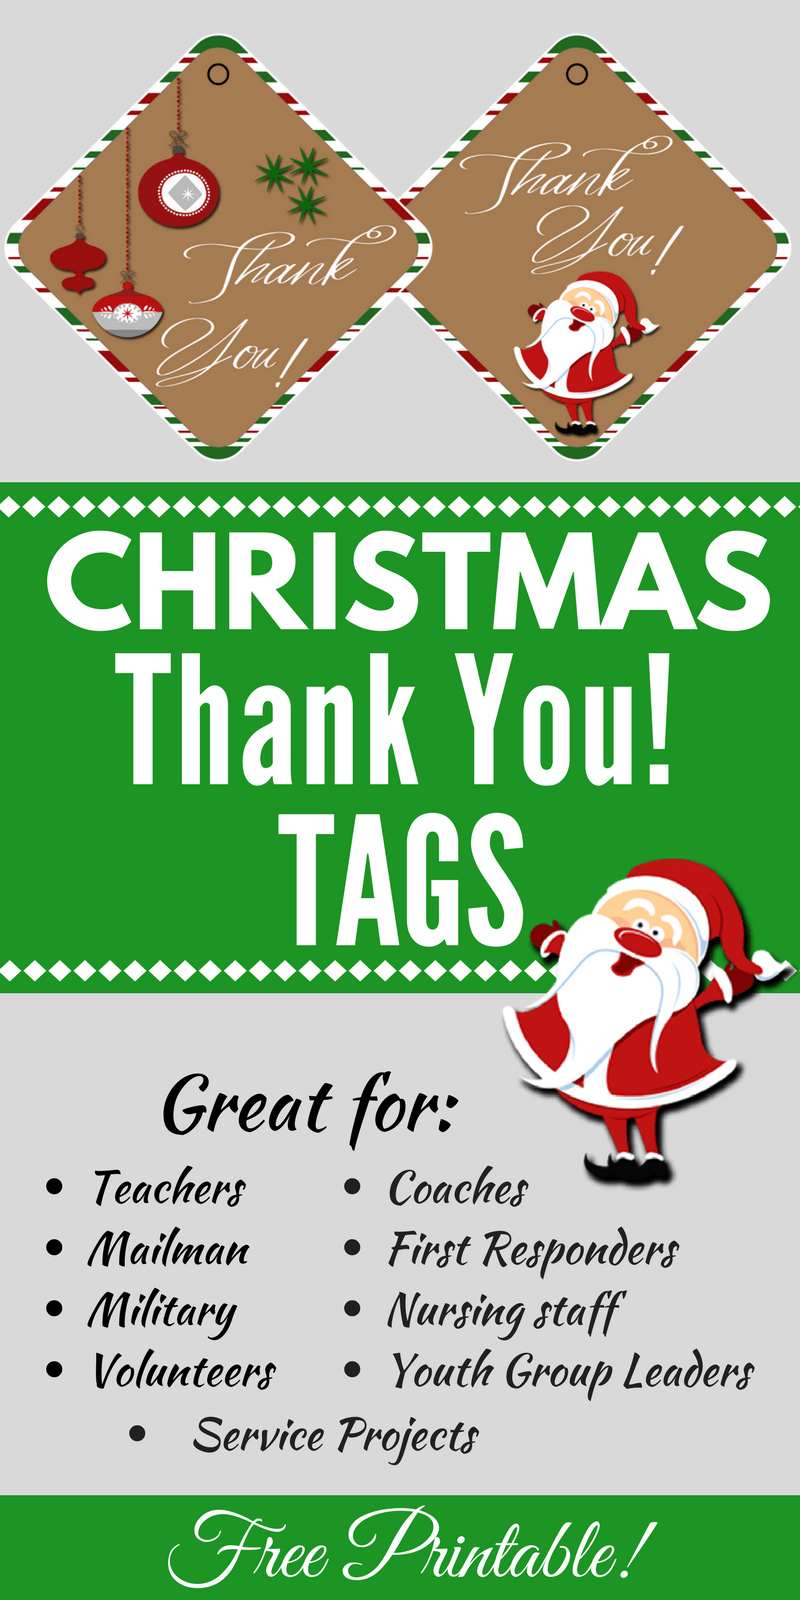 Christmas Thank You Tags Free Printable | Christmas - Food, Crafts - Free Printable Christmas Food Labels